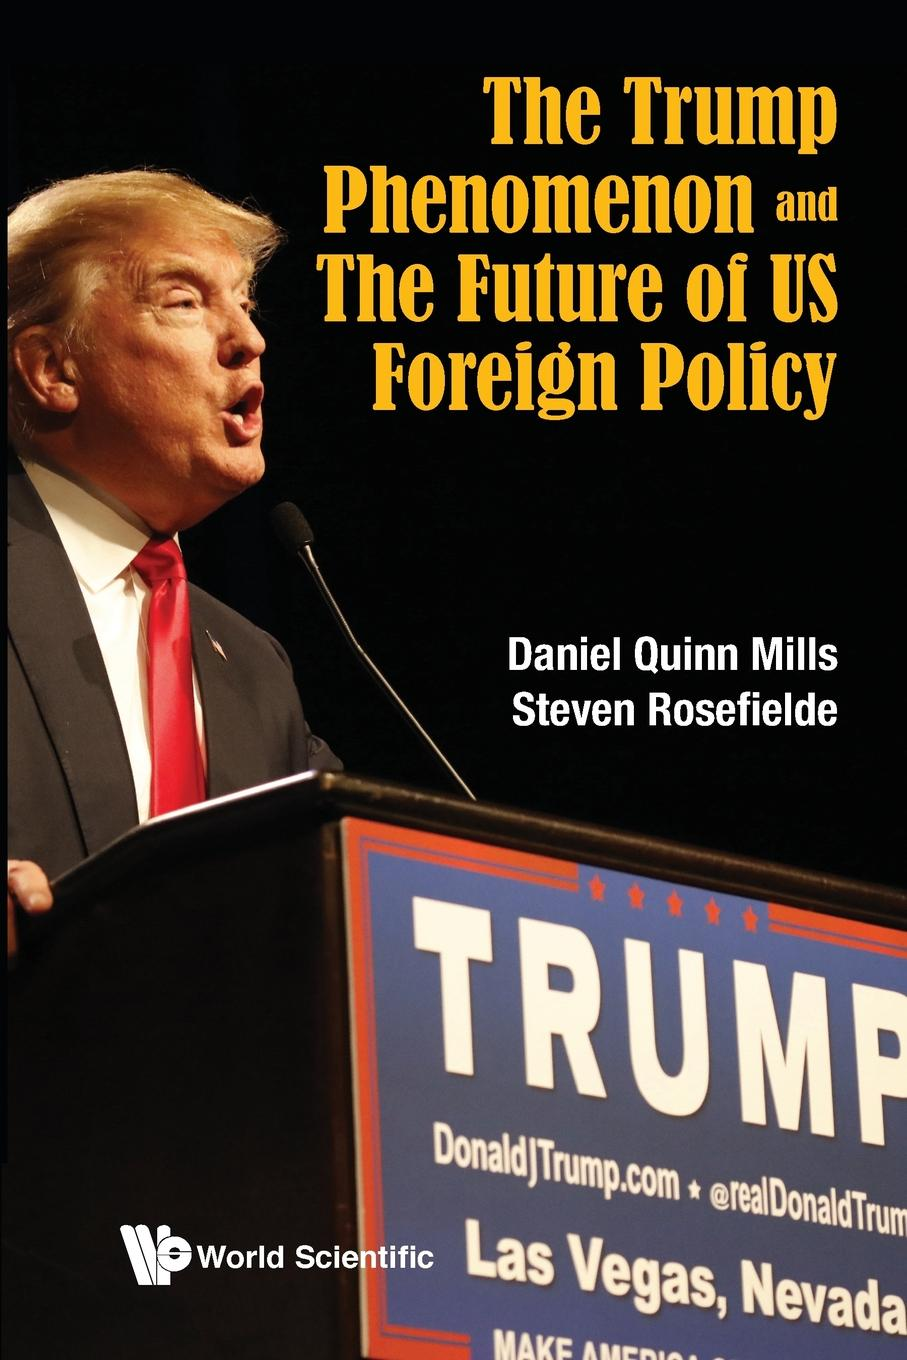 Daniel Quinn Mills, Steven Rosefielde TRUMP PHENOMENON AND THE FUTURE OF US FOREIGN POLICY, THE jeffrey lantis s us foreign policy in action an innovative teaching text